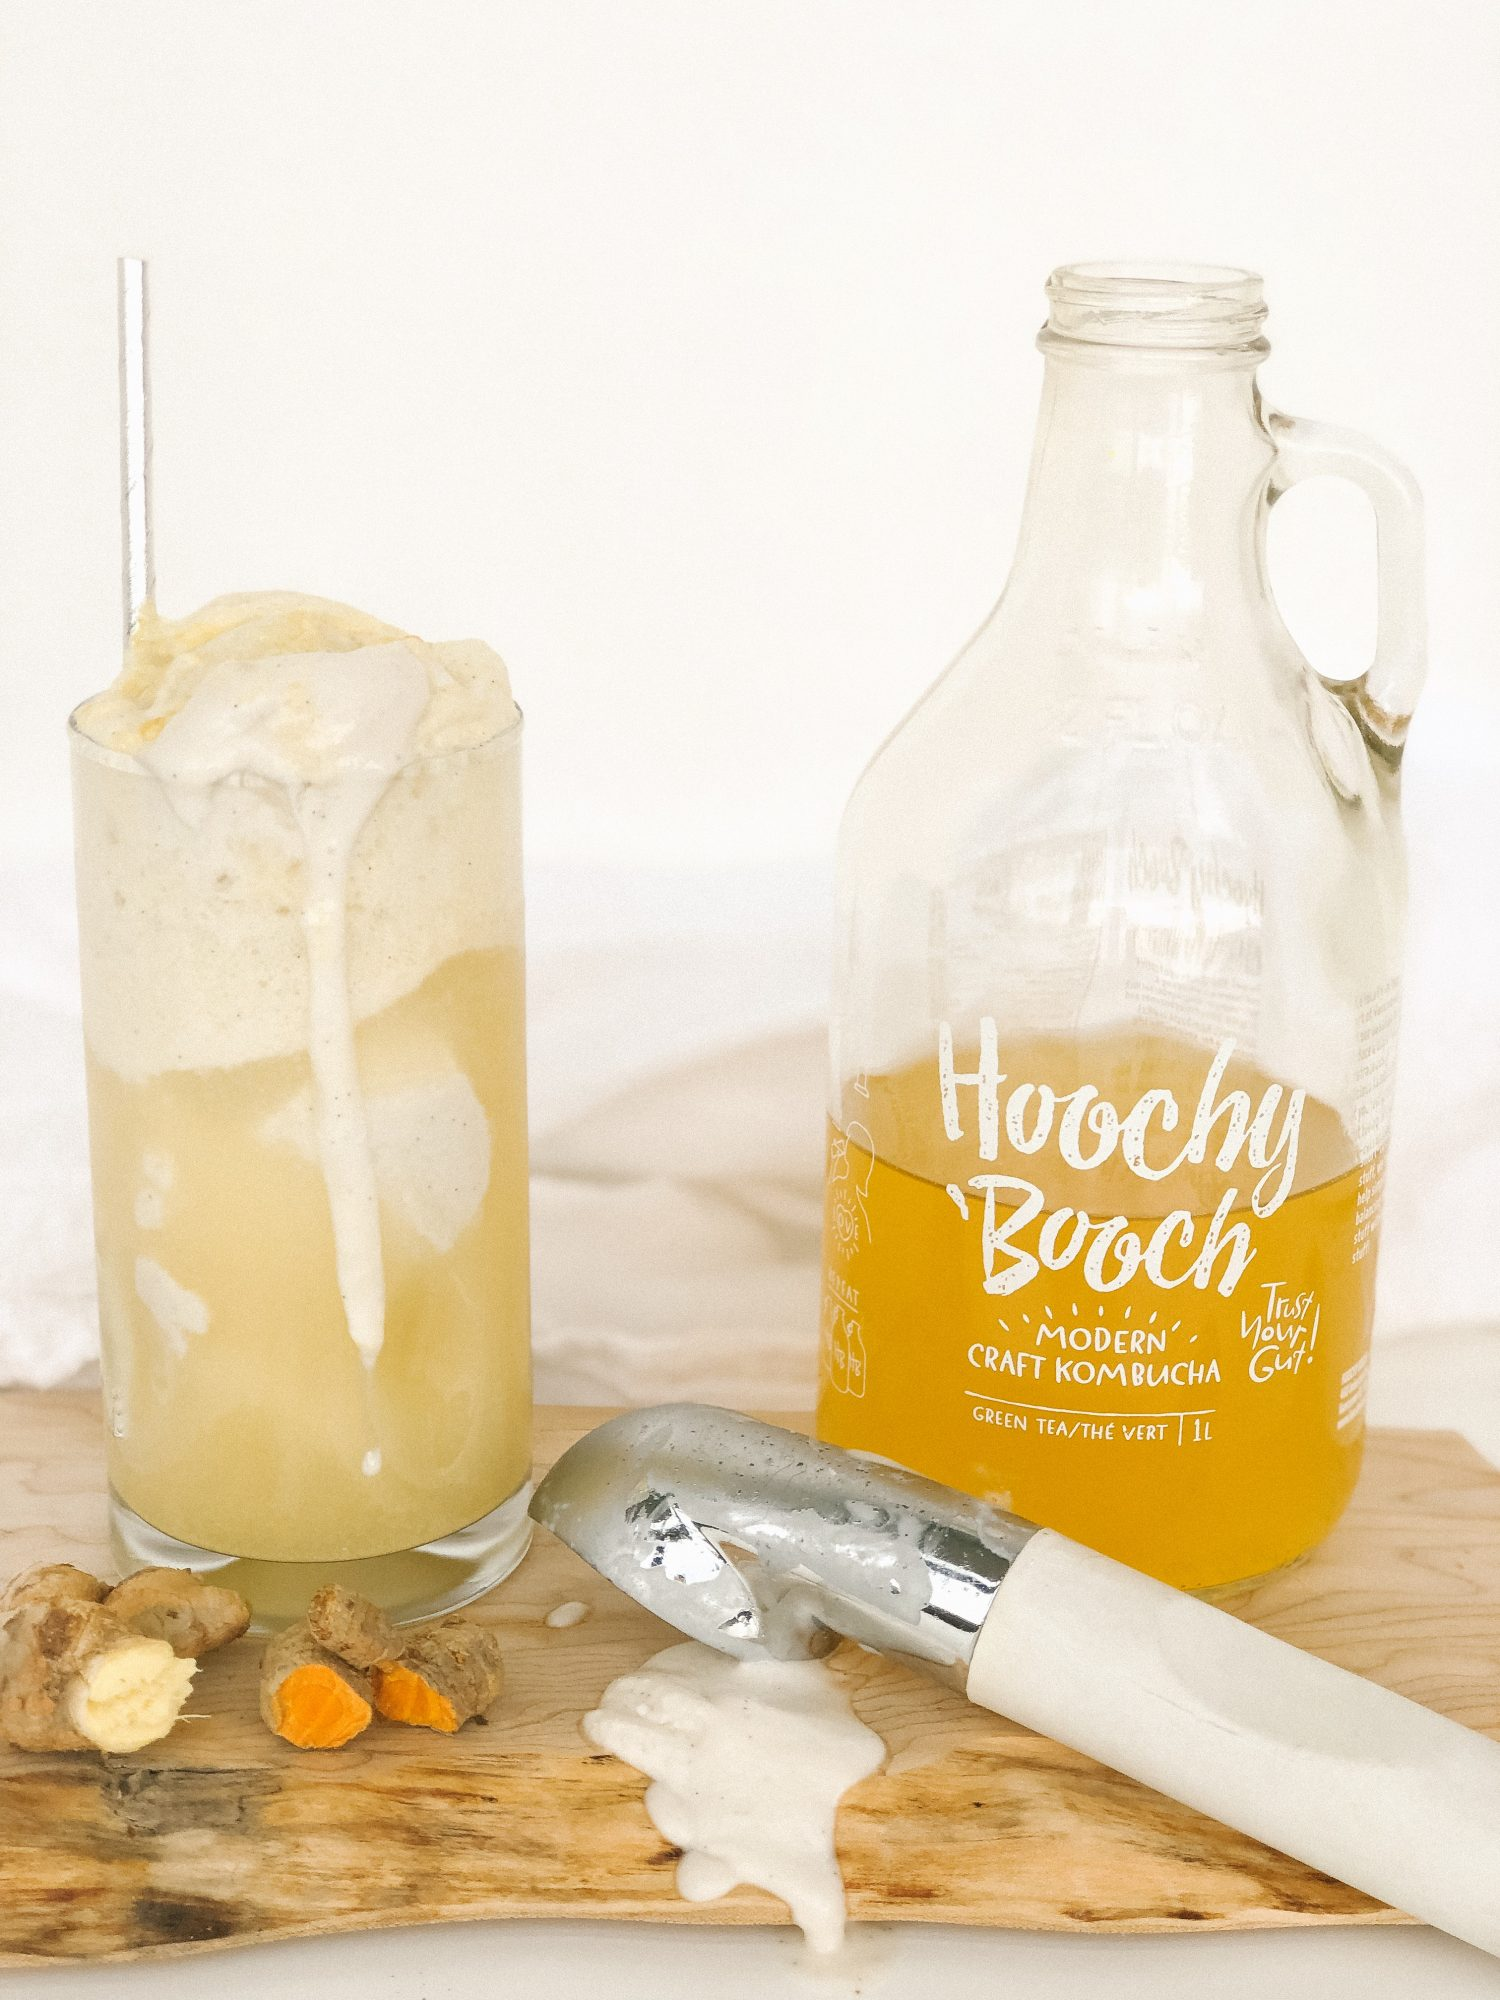 Hoochy Booch Kombucha: Versatile and Natural, Perfectly Sweet and Pleasingly Sour